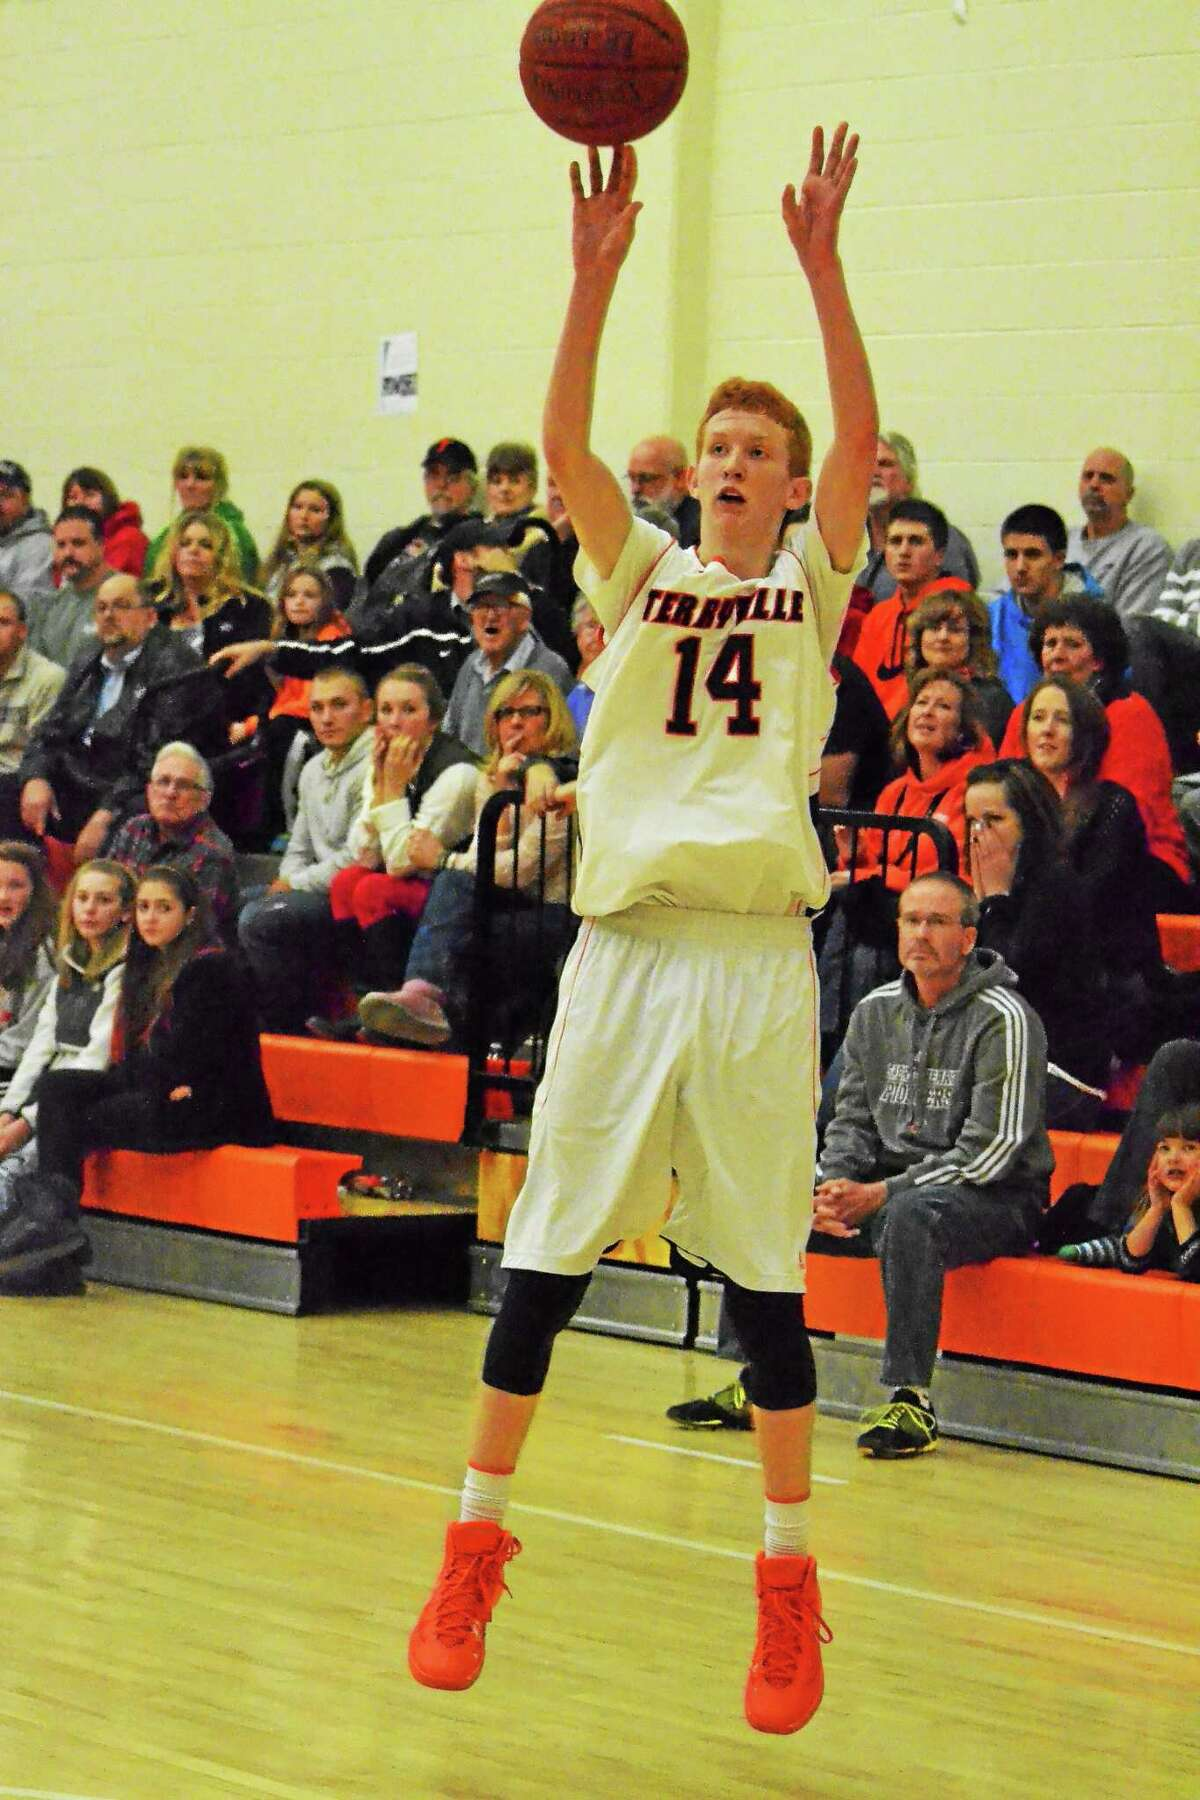 Terryville's Shea Tracy sinks one of his seven three-pointers in the Kangaroos 70-45 win over Lewis Mills. Tracy led all scorers with 24 points.